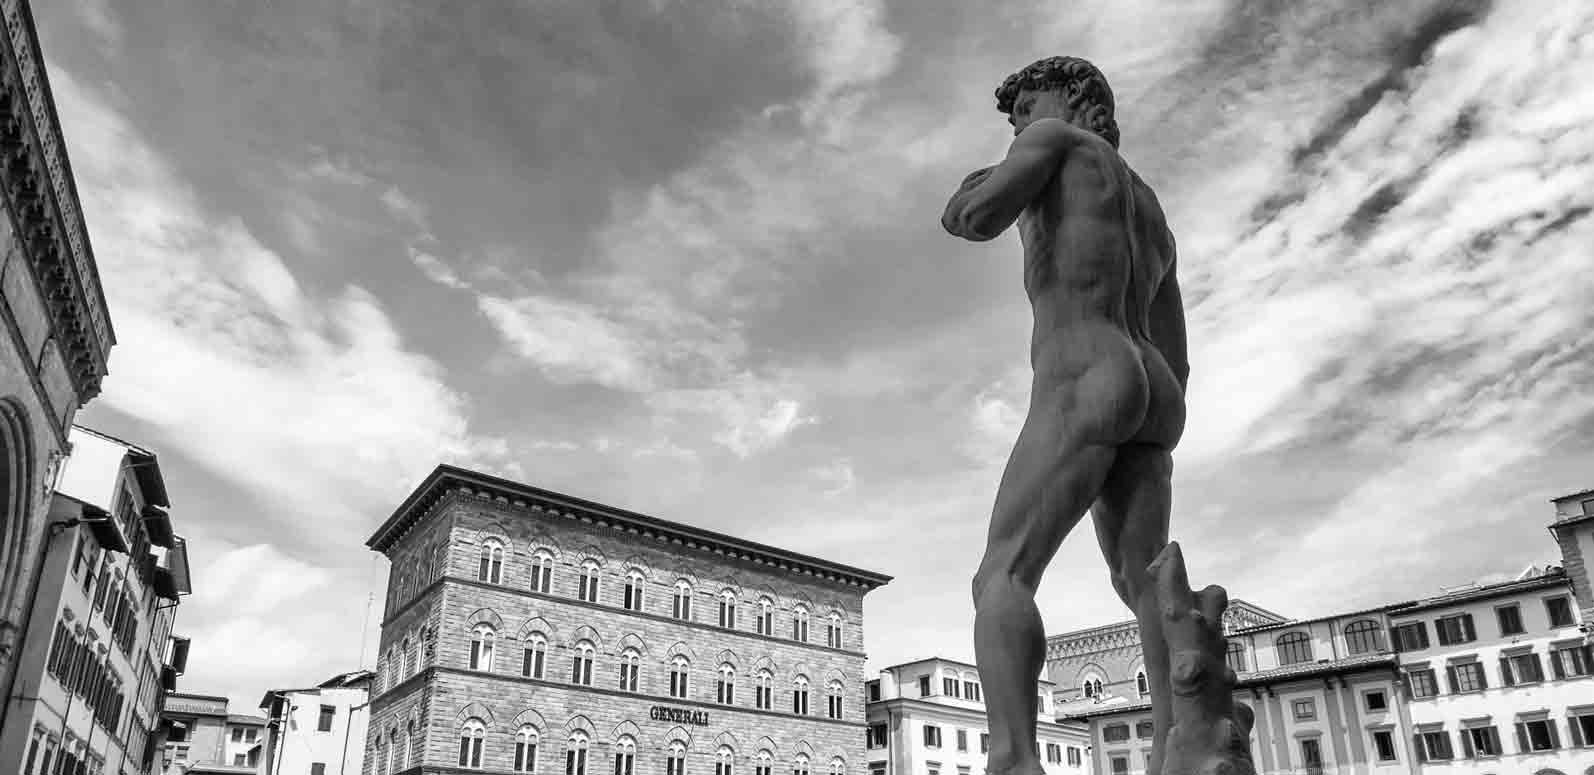 david-michelangelo-firenze